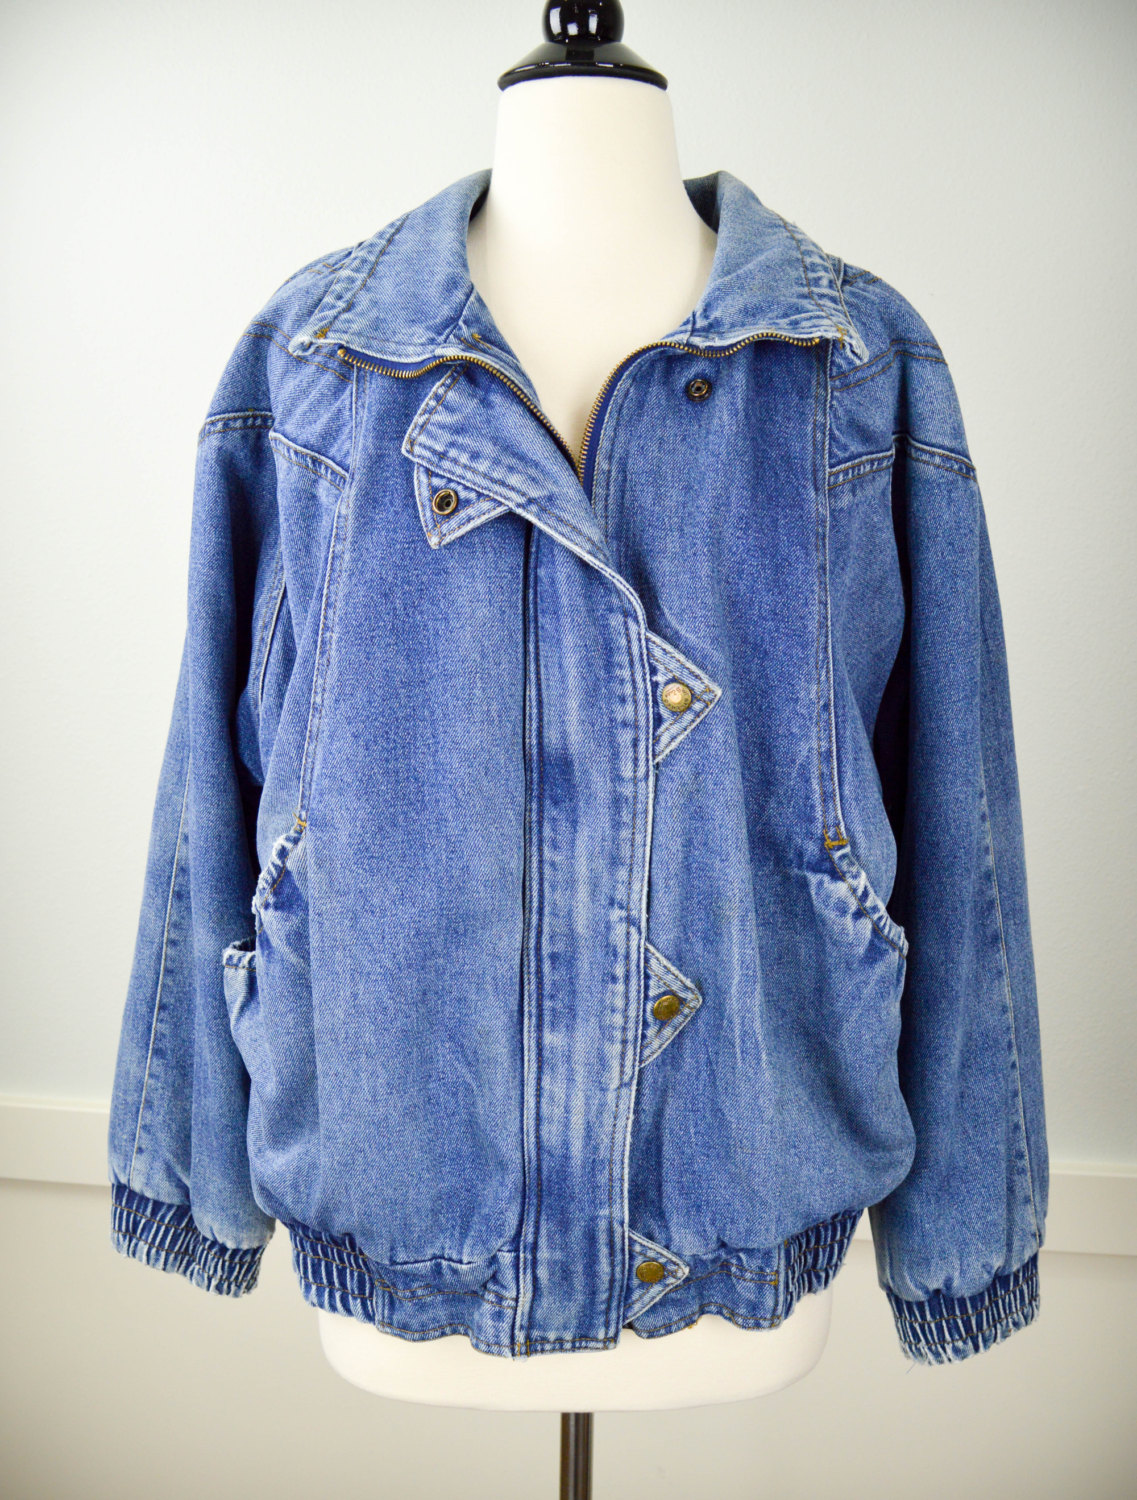 80s Fashion: How to Wear Jean Jackets Now Like Totally 80s